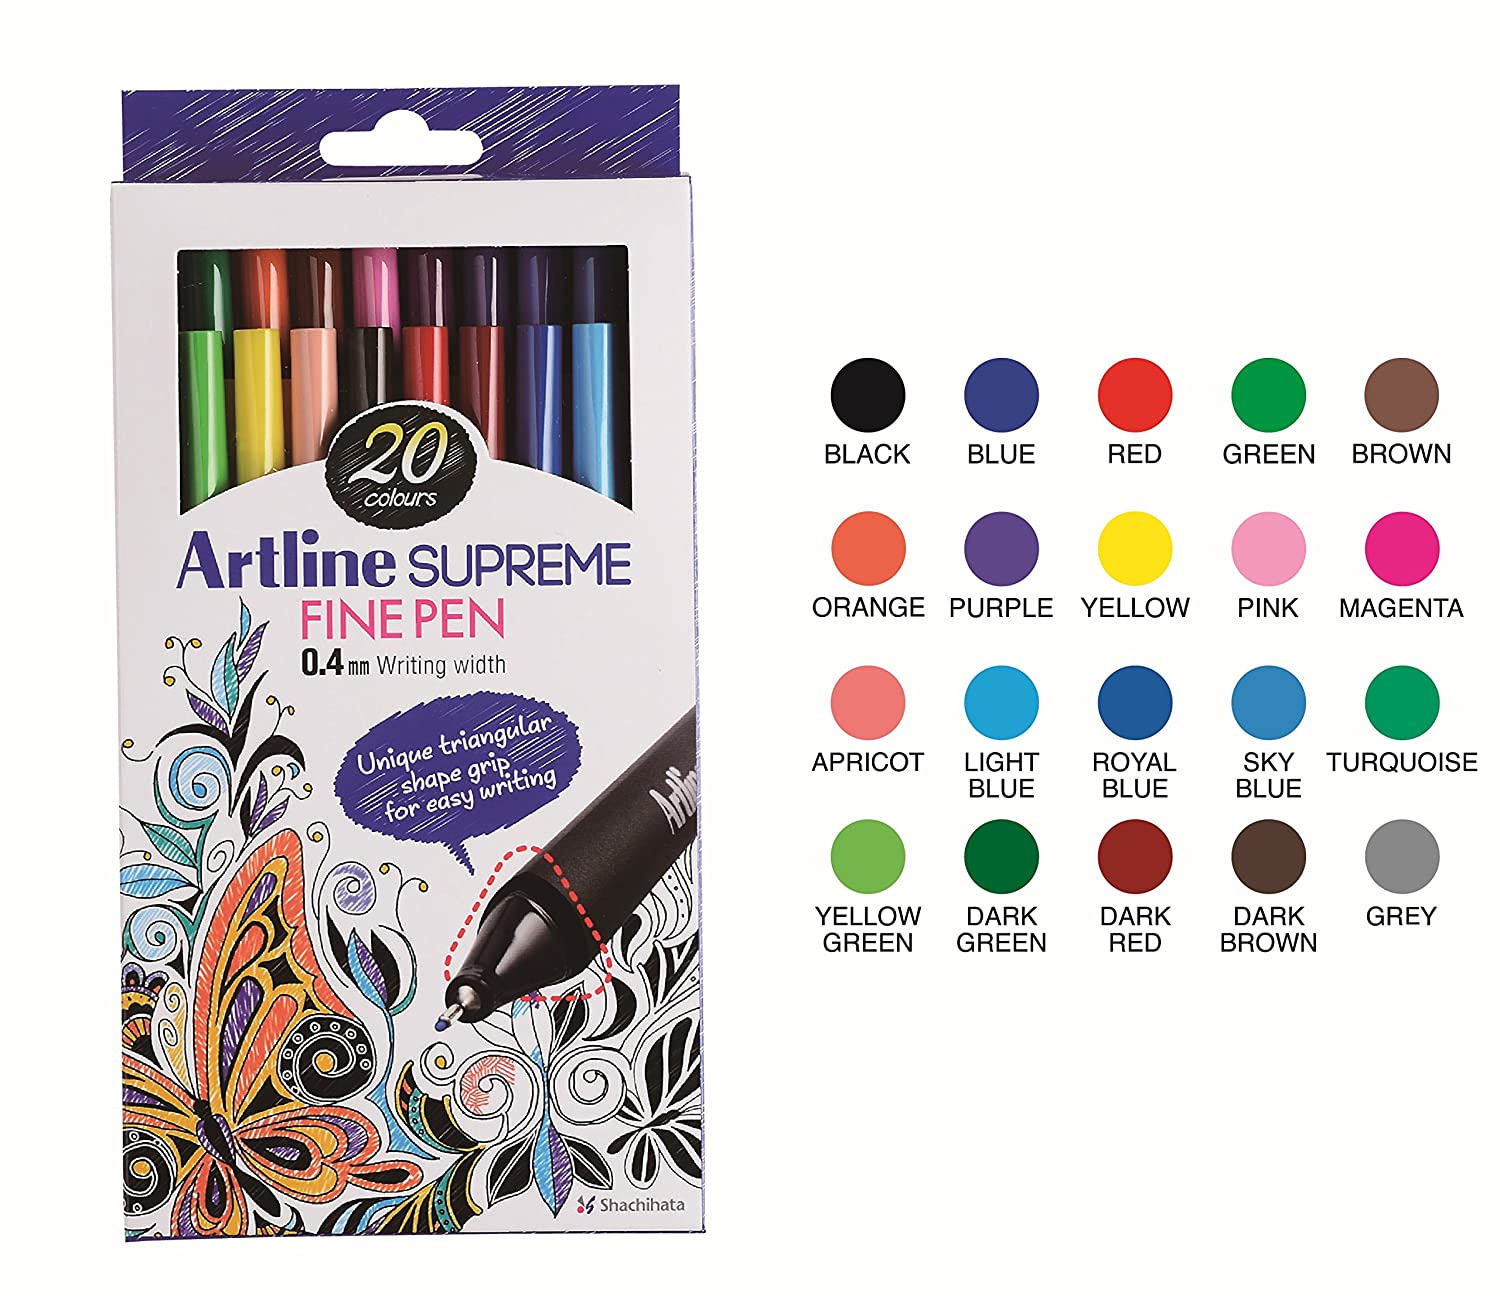 Artline Supreme Fine Pen Fineliner Pens 0.4mm - Bright Vivid Colors For Technical Drawing - Pack 20